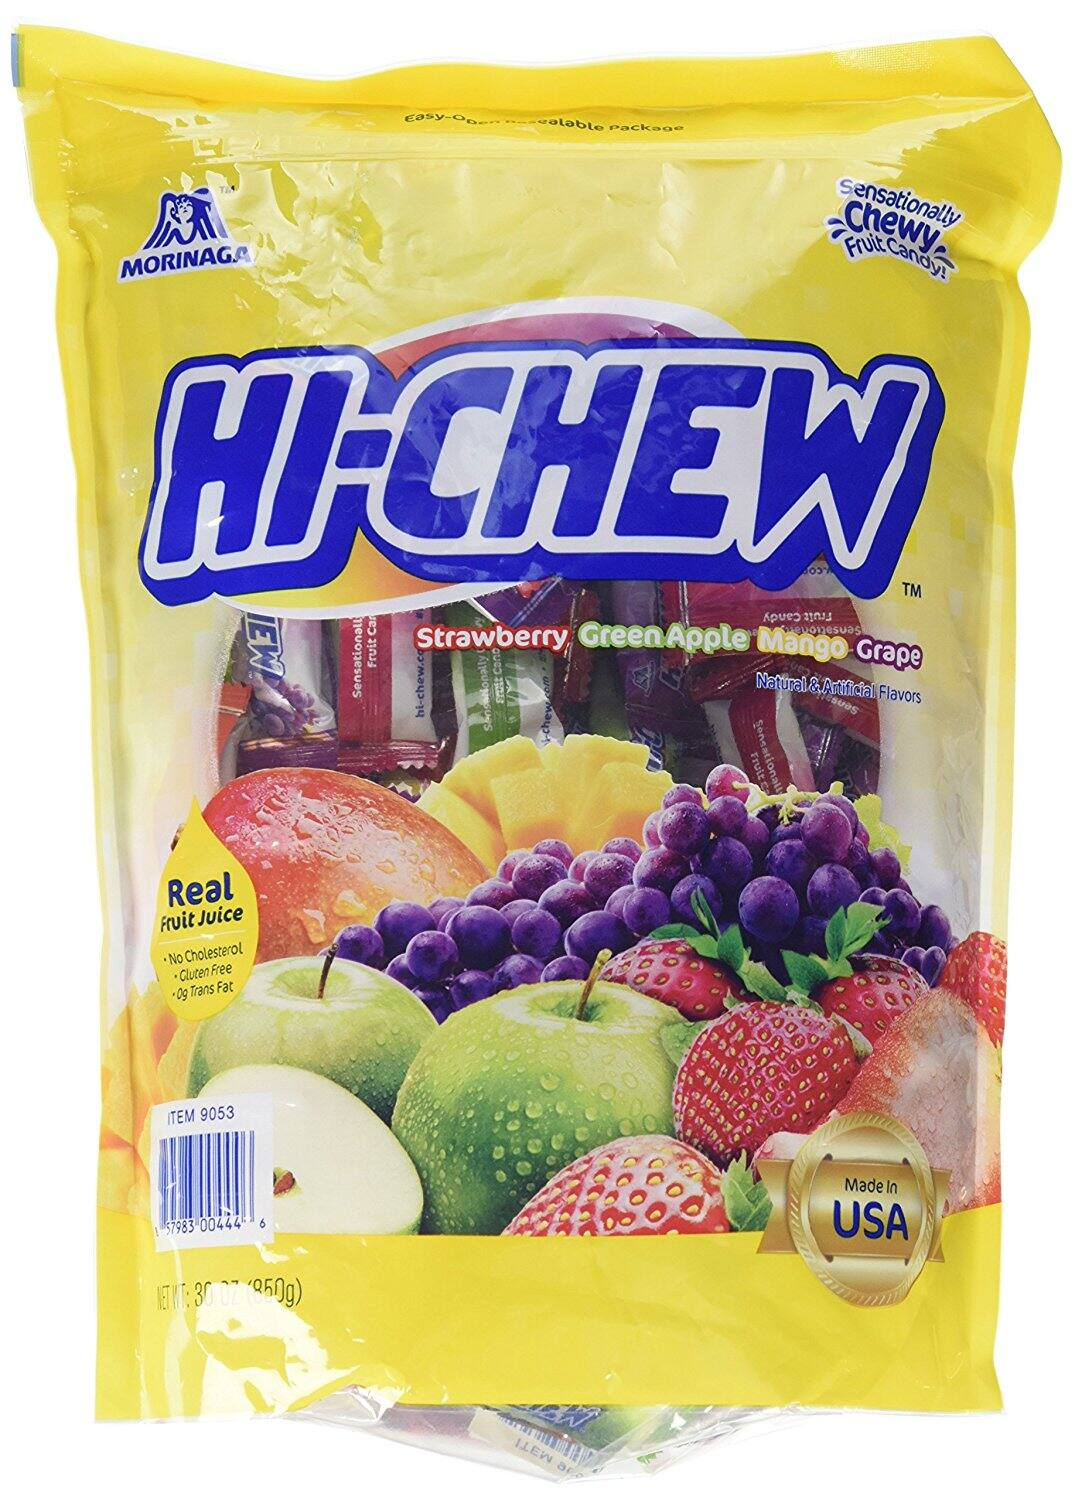 Hi-Chew Fruit Chews, Variety Pack, 30 OZ (1 bag) $12.09